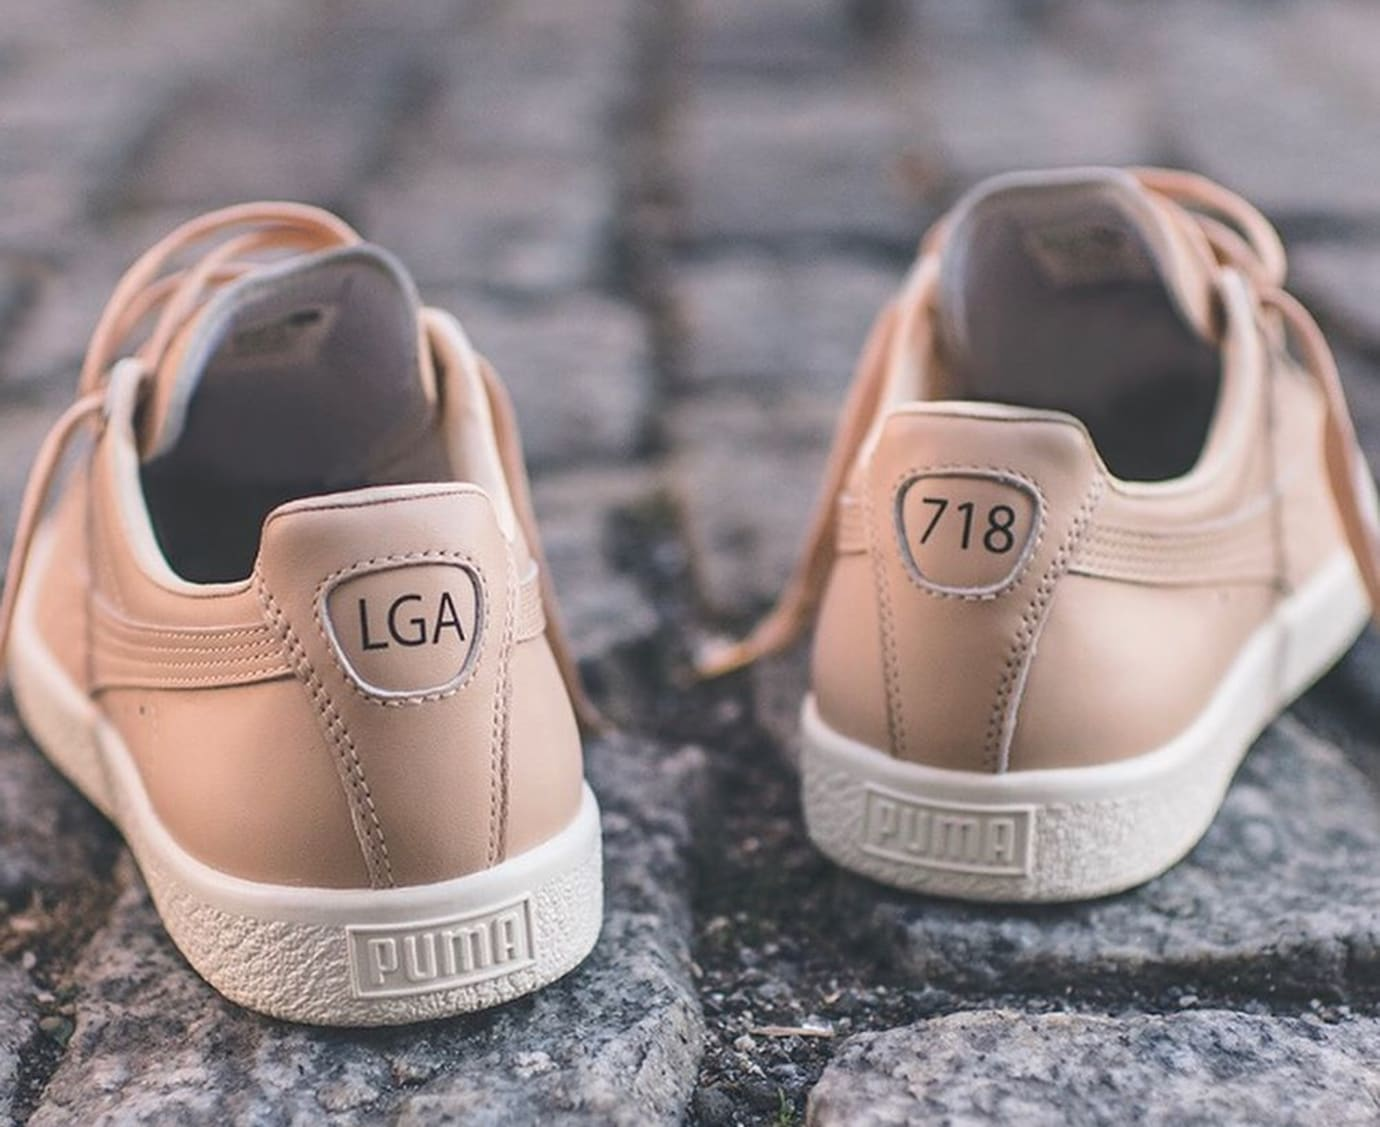 Jay-Z x Puma Clyde 4:44 NYC Release Date Heel